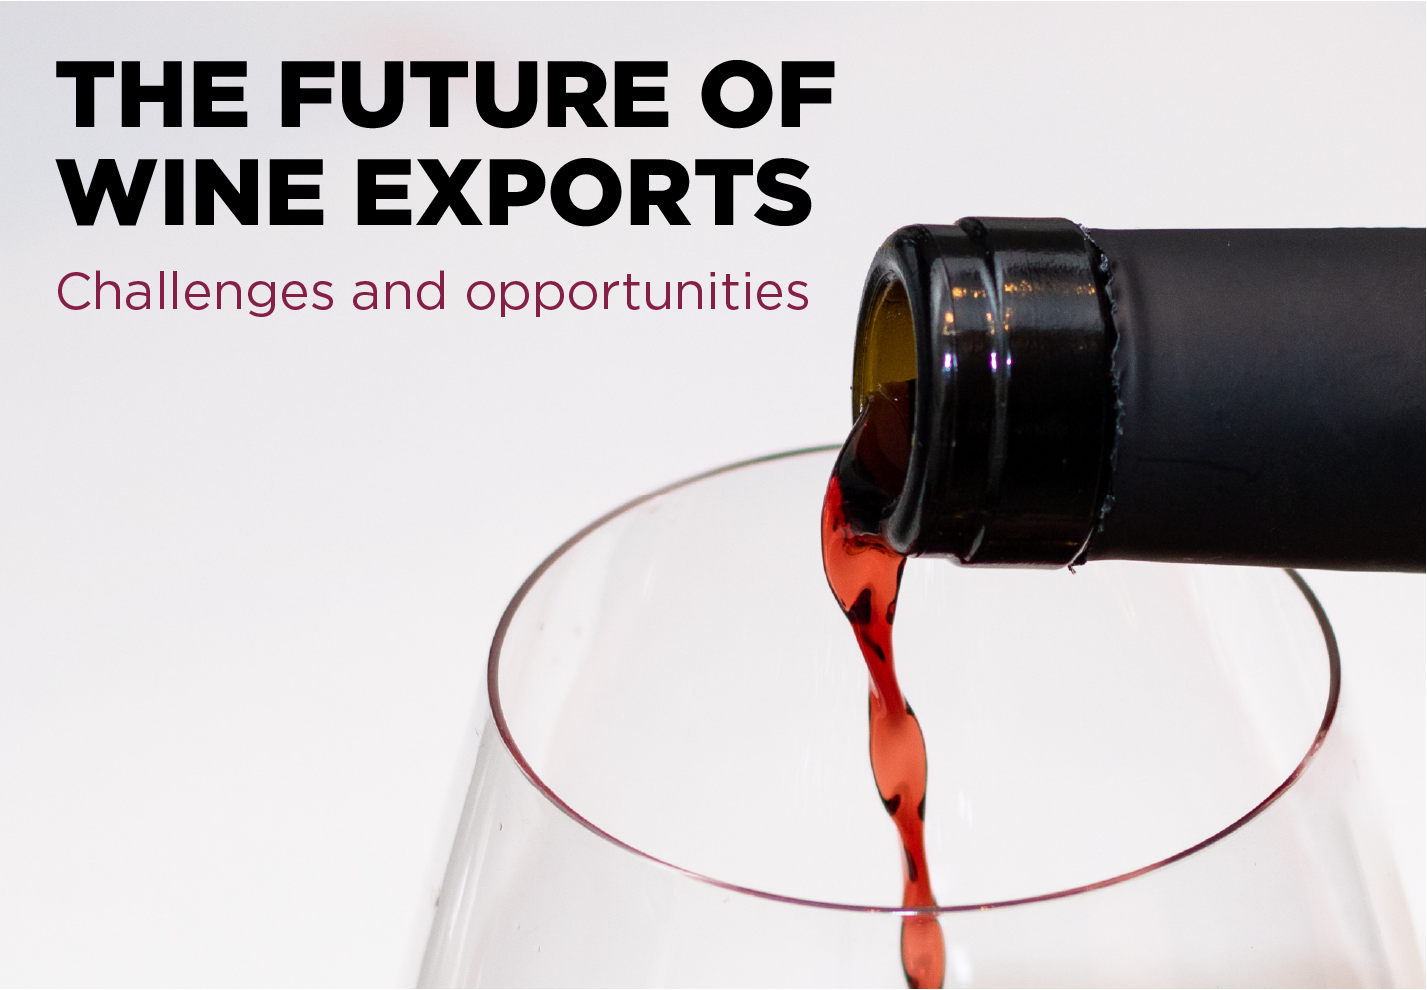 What are Covid and politics telling us about the future of wine exports?